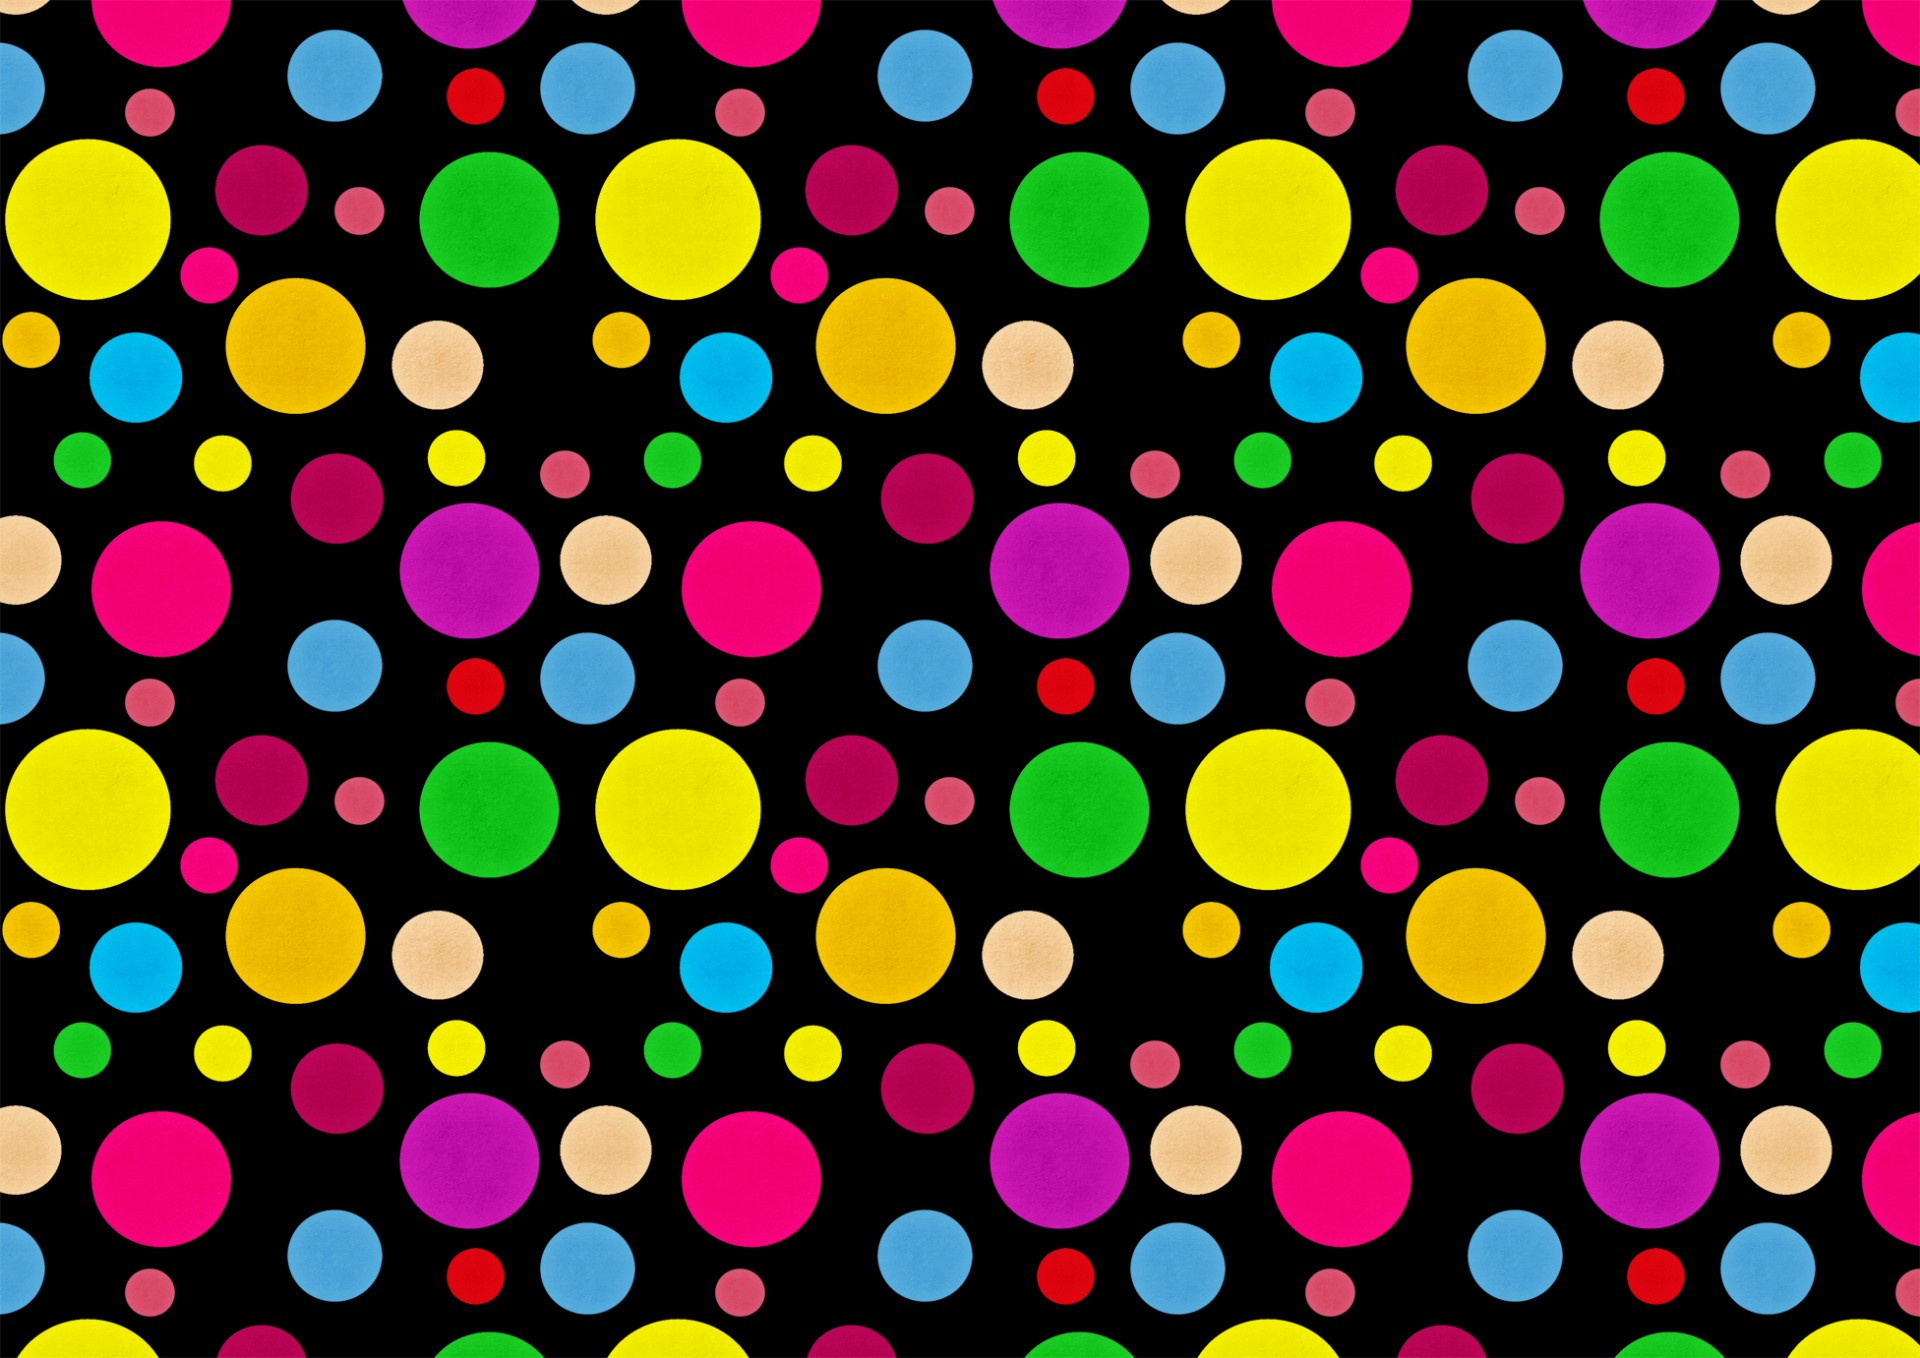 Cute Zig Zag Wallpapers Black Background Rainbow Dots Paper Free Stock Photo